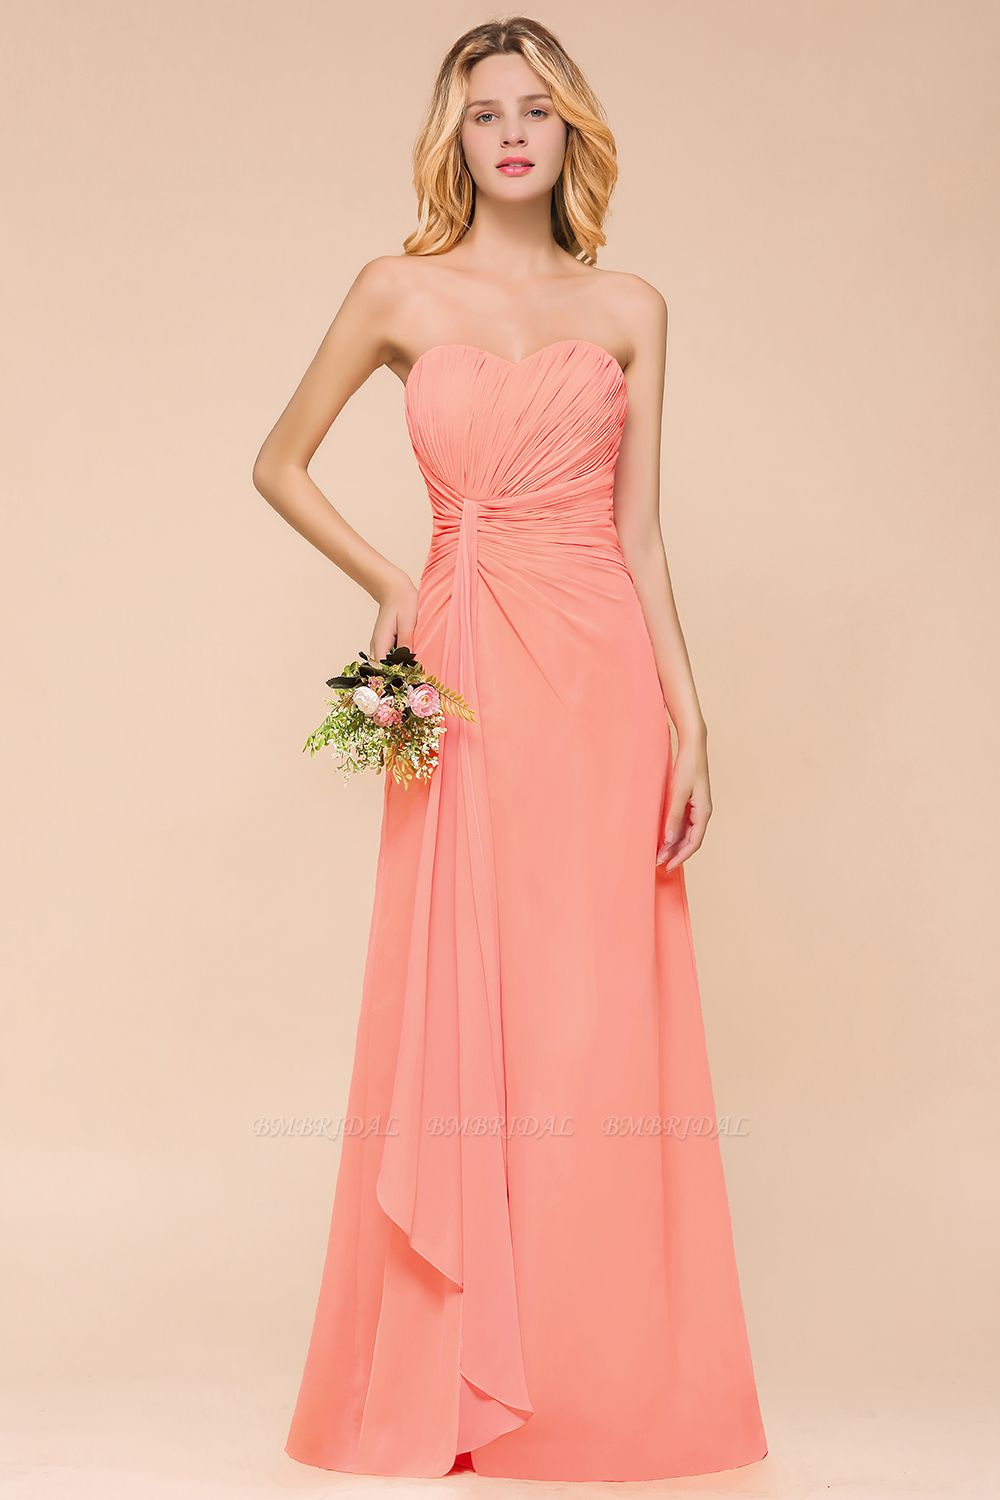 Stylish Sweetheart Ruffle Affordable Coral Chiffon Bridesmaid Dresses Online